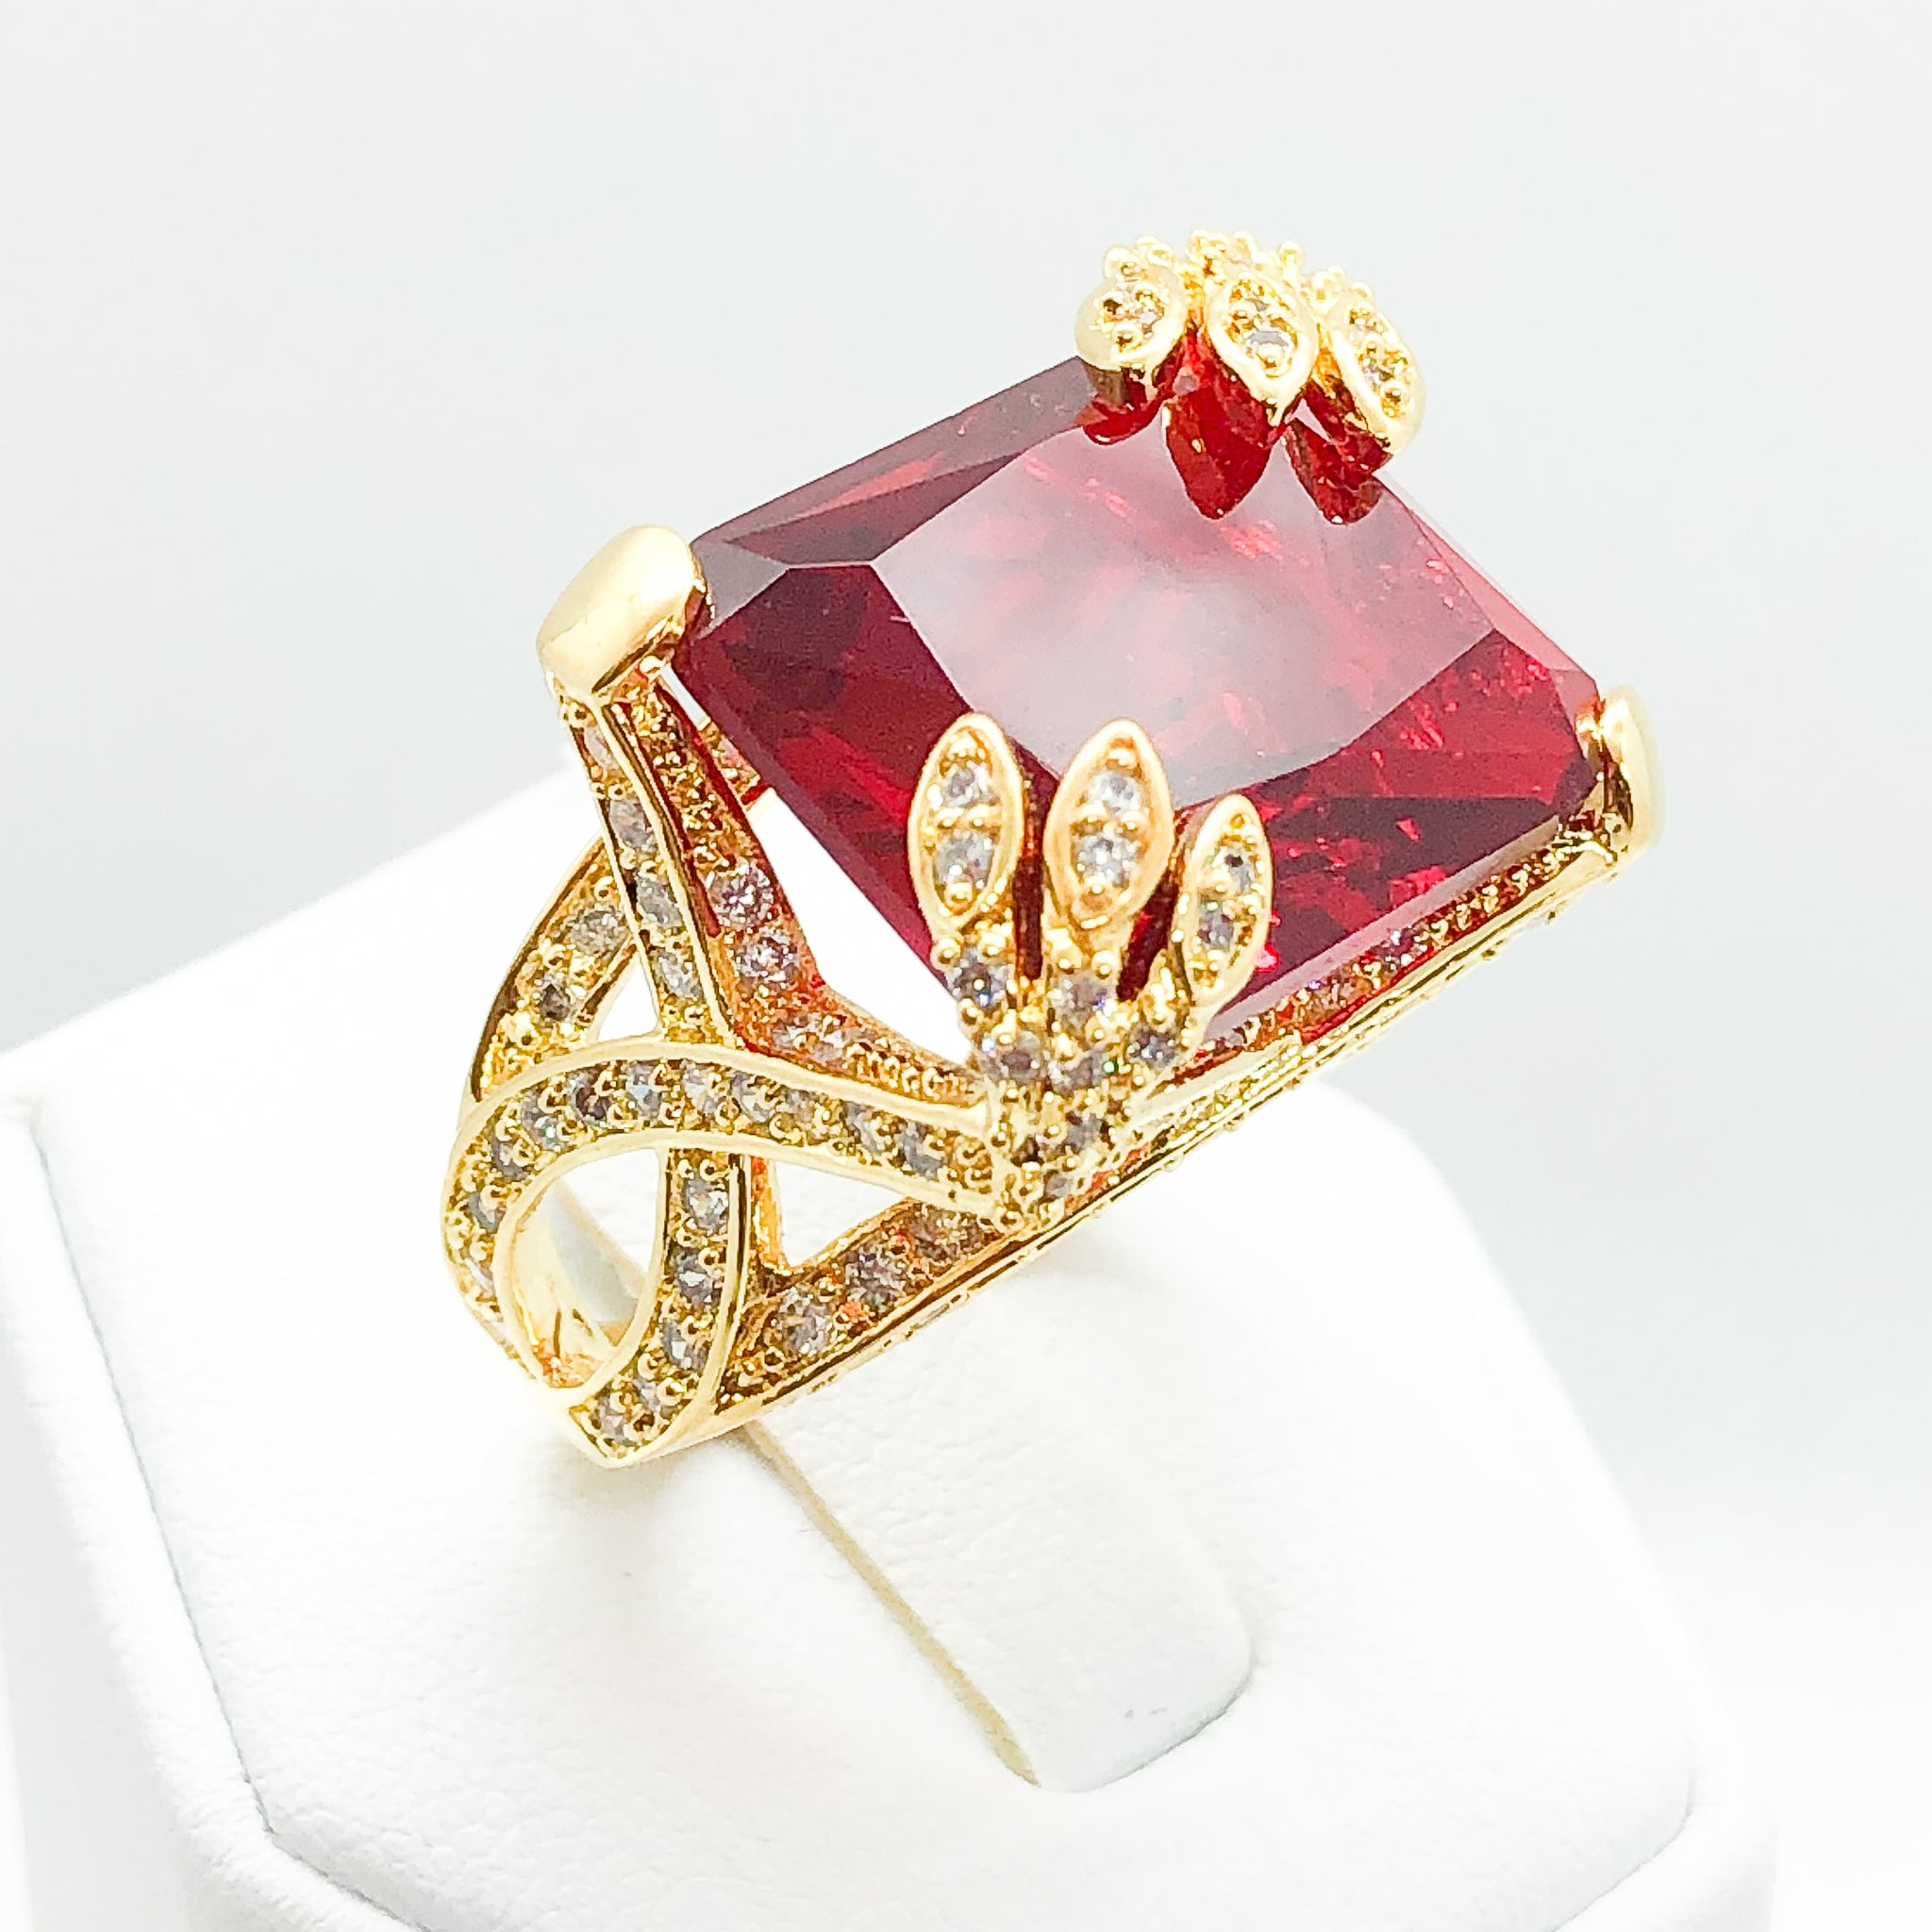 ID:R3844-3 Women Fashion Jewelry 18K Yellow Gold GF Big Center Ruby with Clear Diamonique Accent Alluring Cocktail Ring Perfect Anniversary Gift